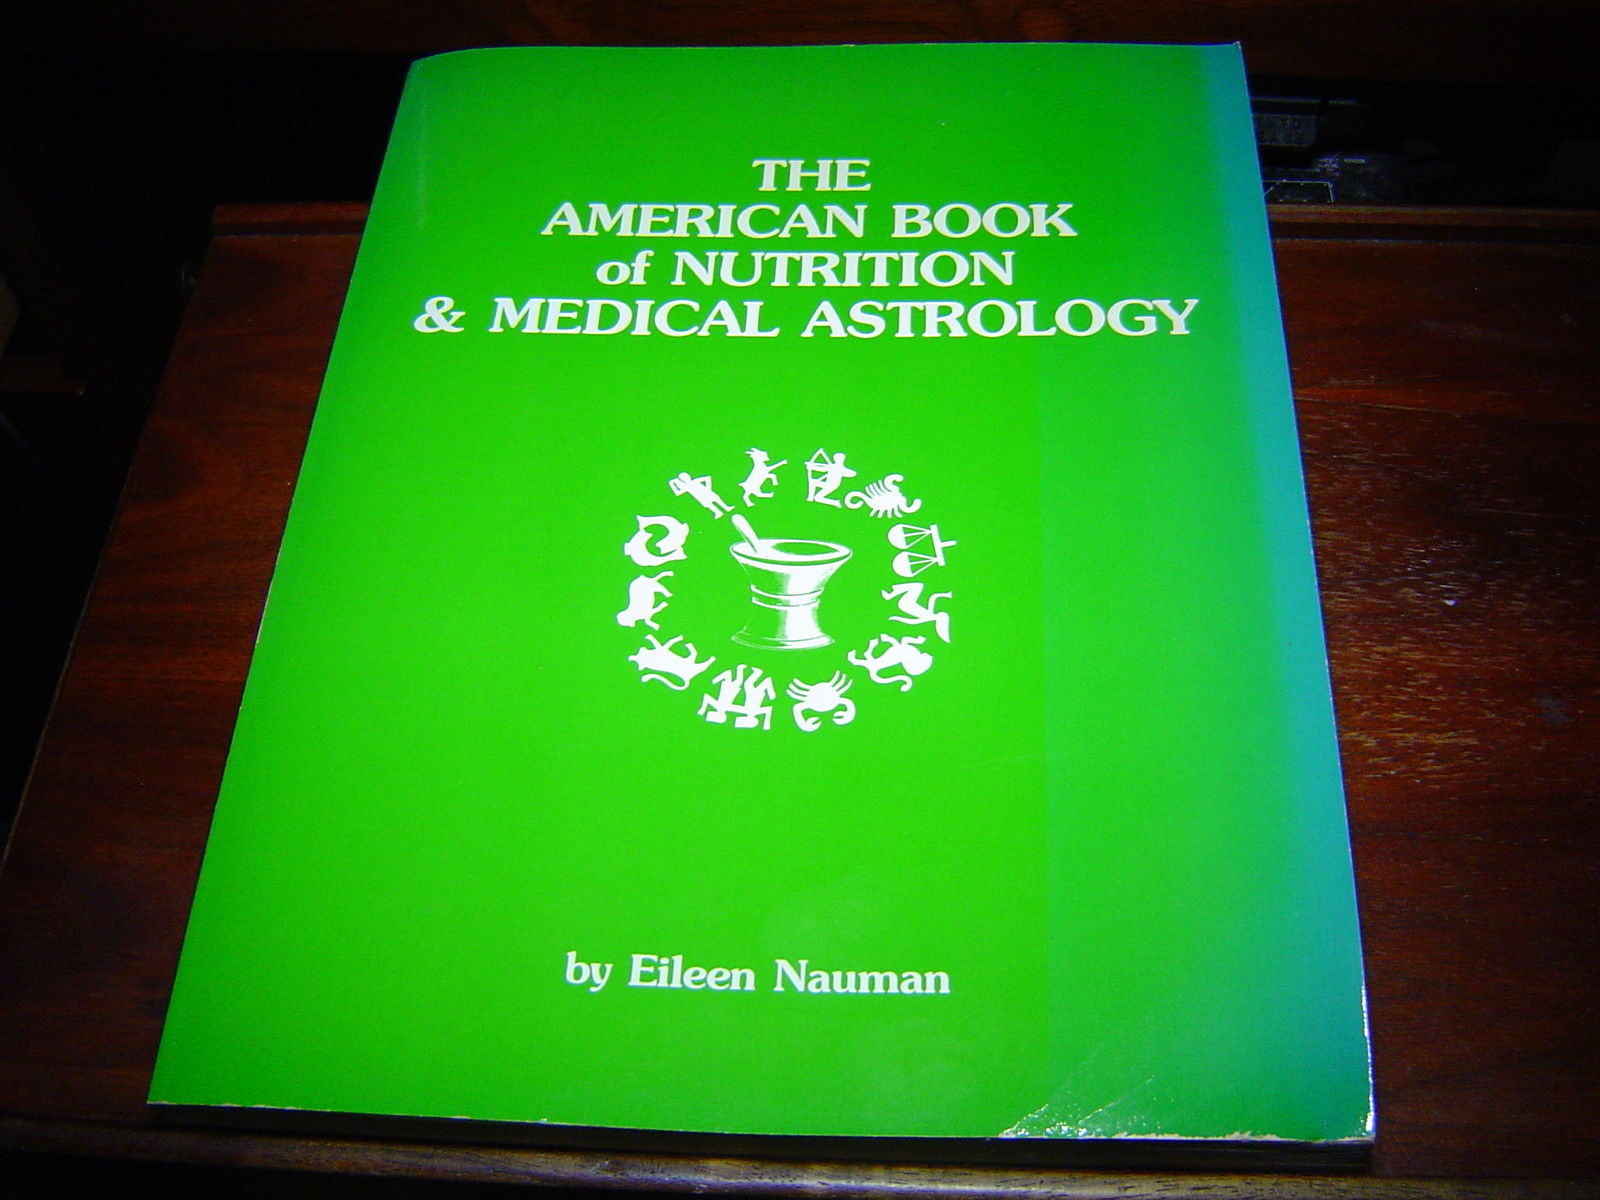 The American Book of Nutrition and Medical Astrology by Eileen Nauman (1982)